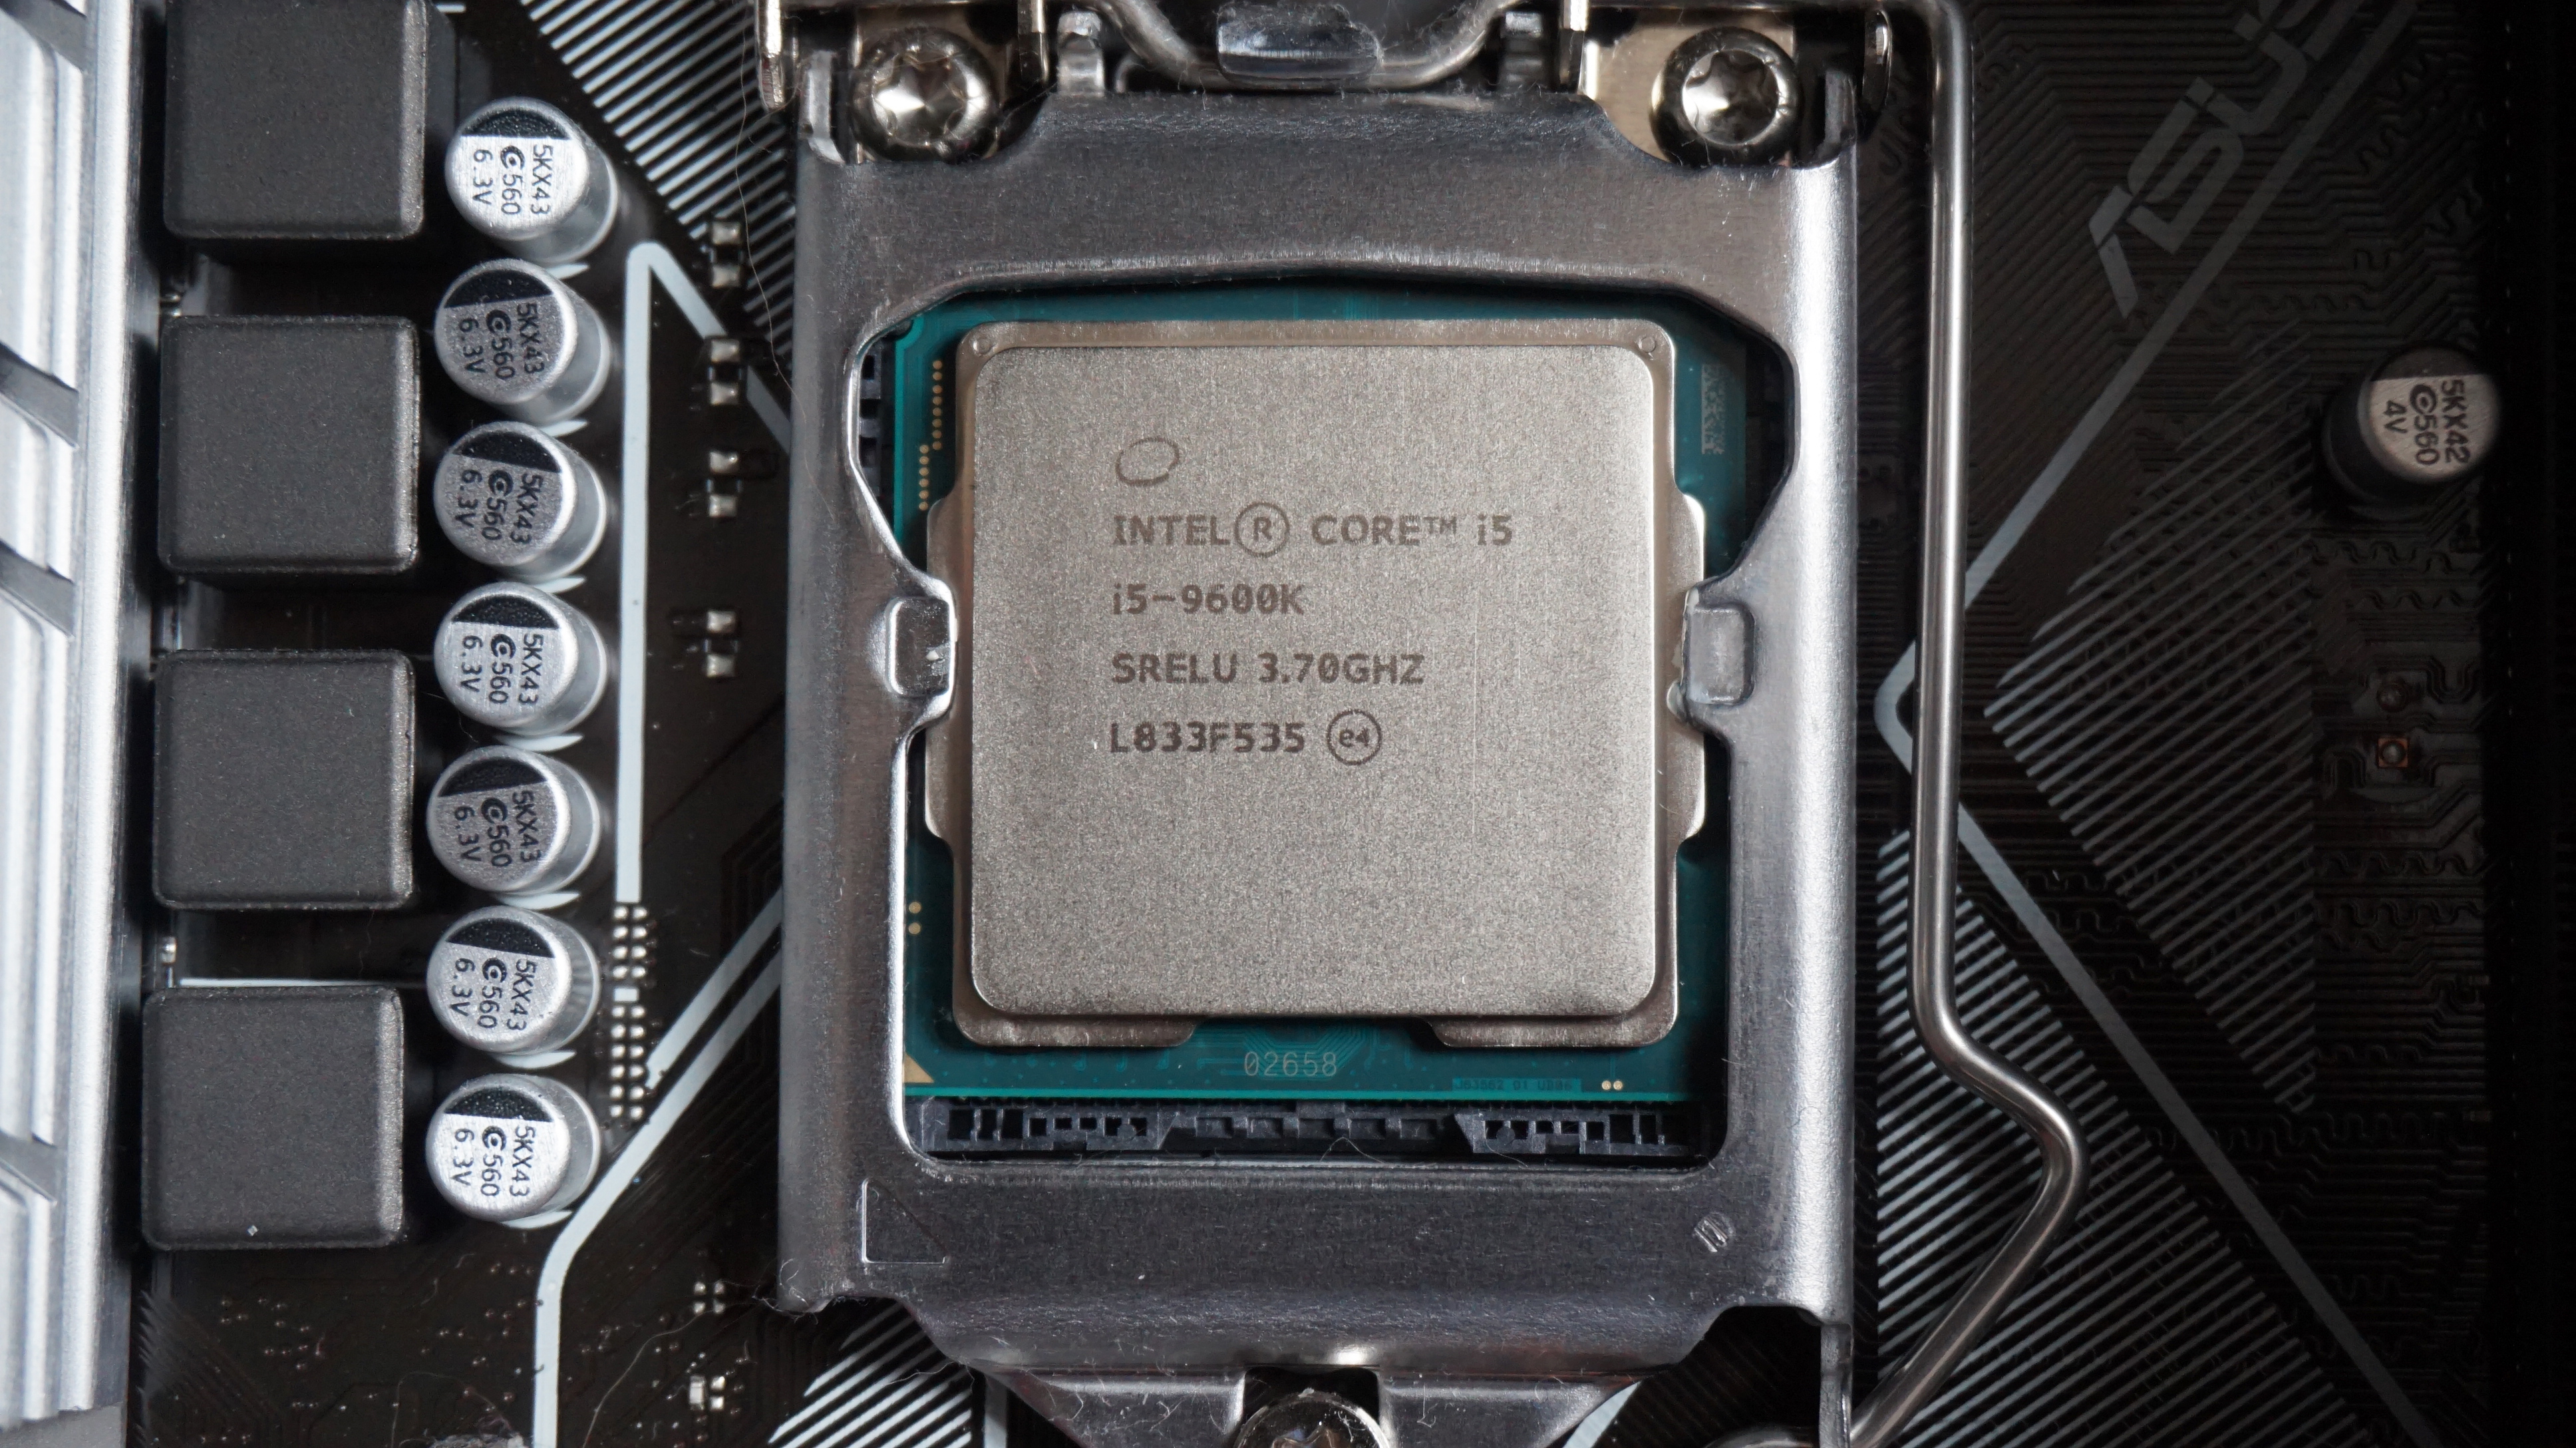 Intel Core i5-9600K review: Our new best gaming CPU champion | Rock